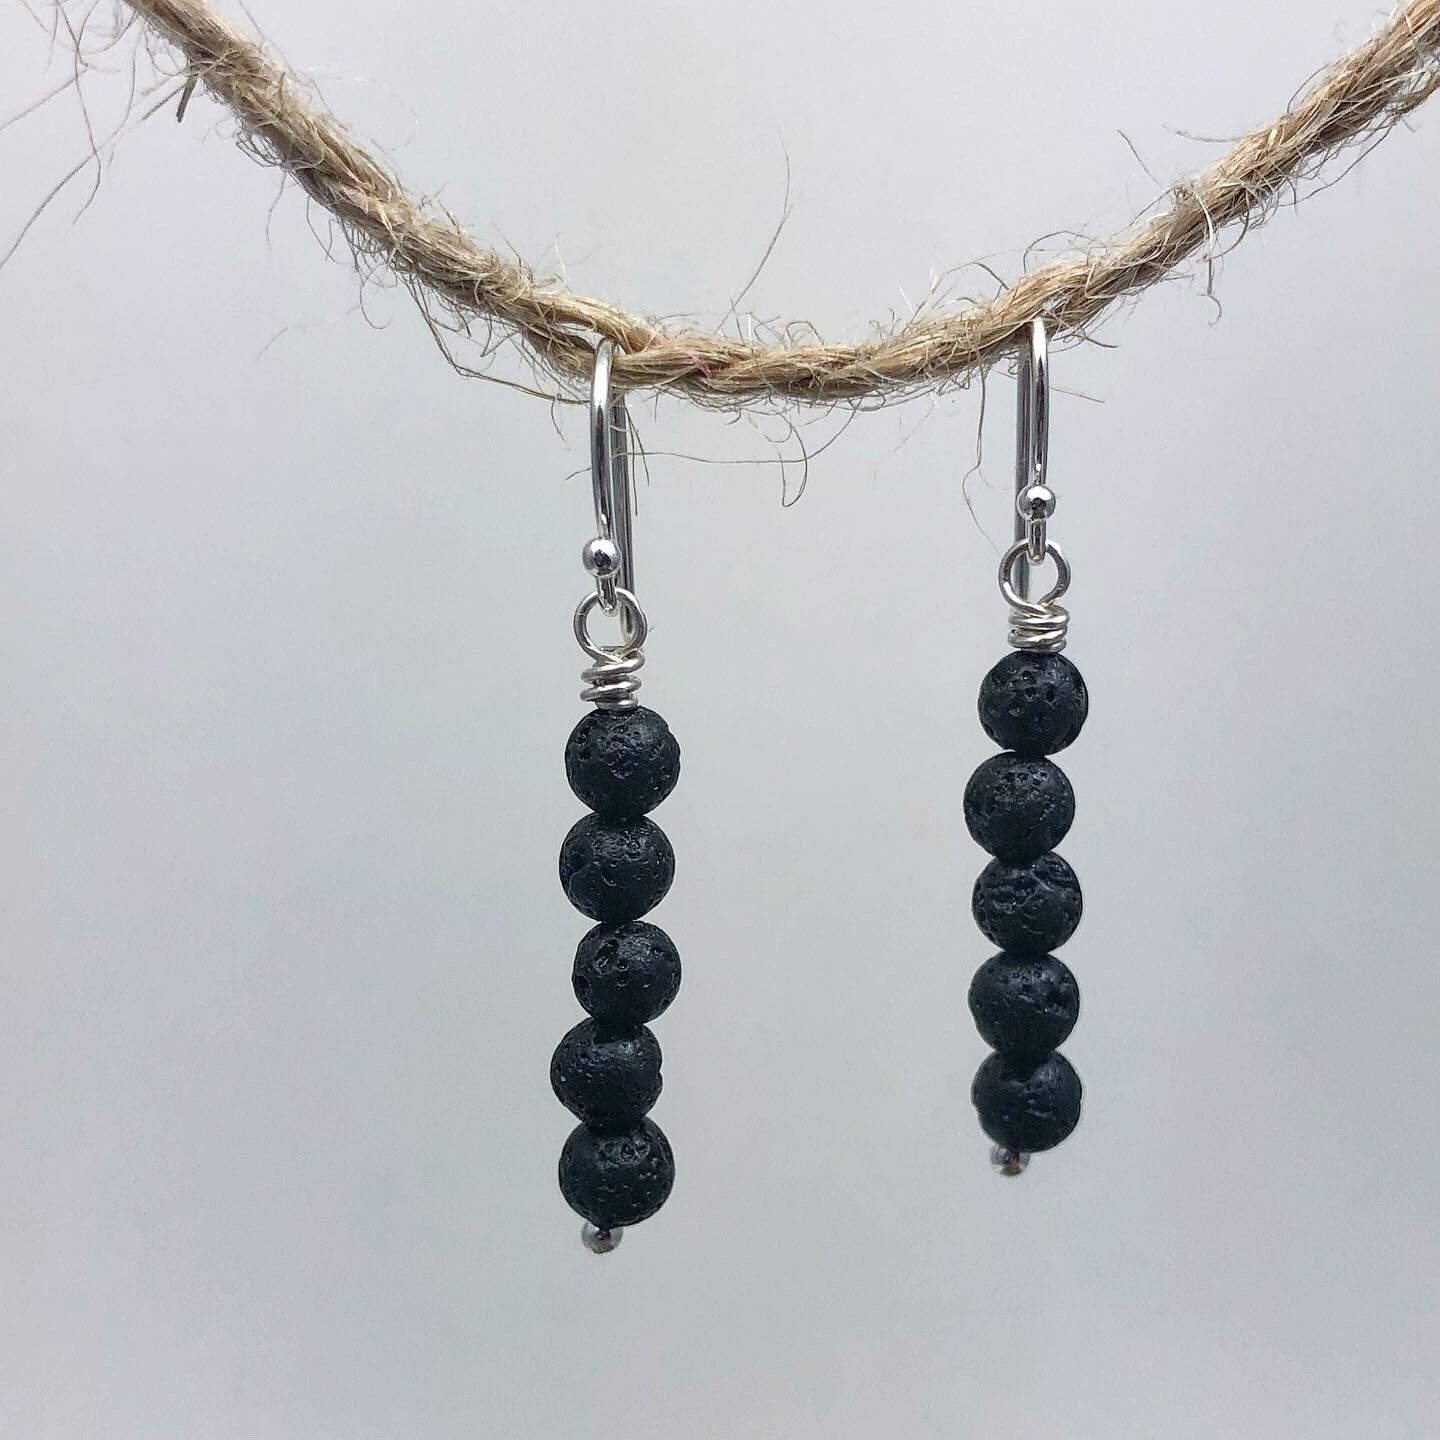 Lava Earrings for Essential Oils, 5 Bead Small